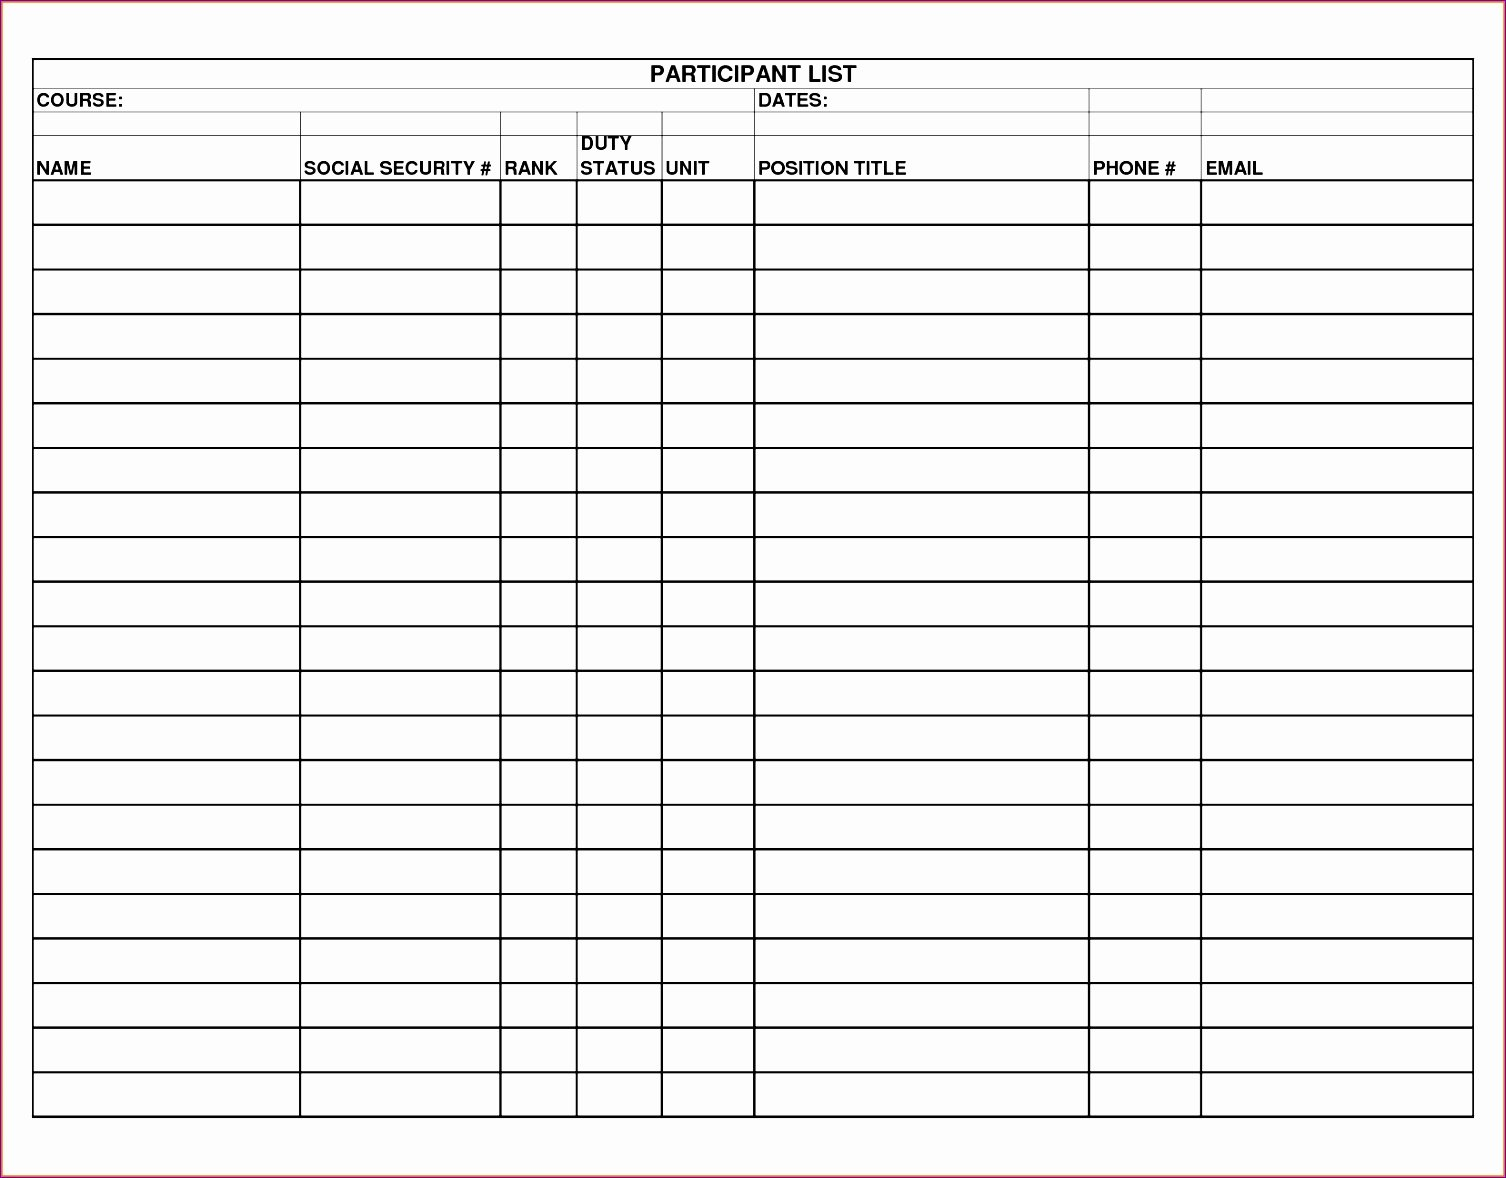 Check Off List Template Lovely 8 Check F List Template Excel Exceltemplates